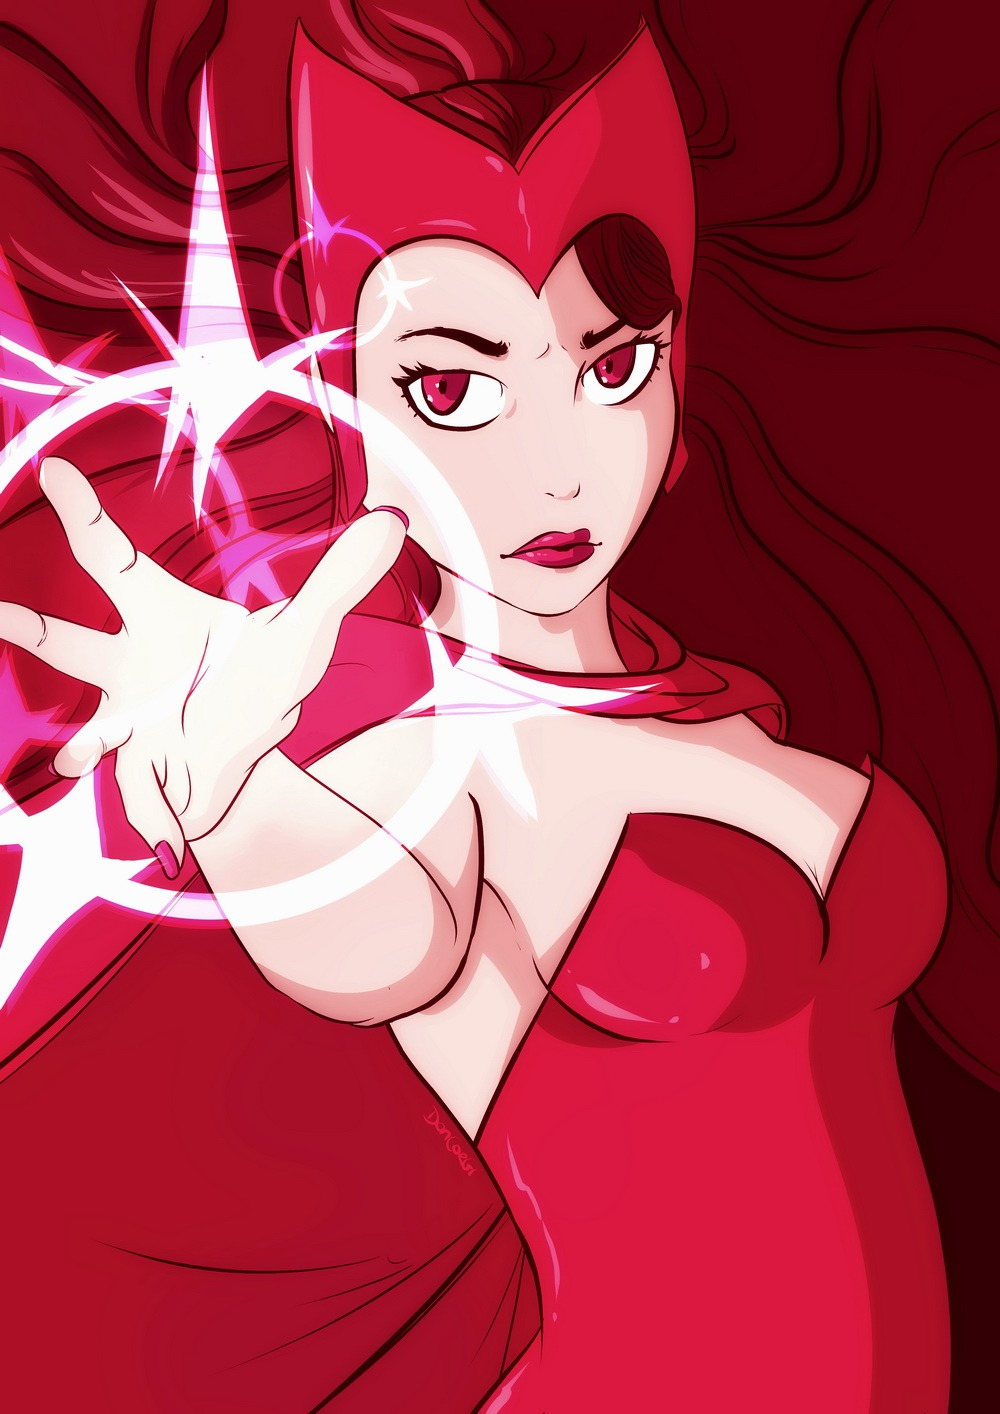 scarlet witch, marvel fan art, xmen, avengers, age of ultron, comics,